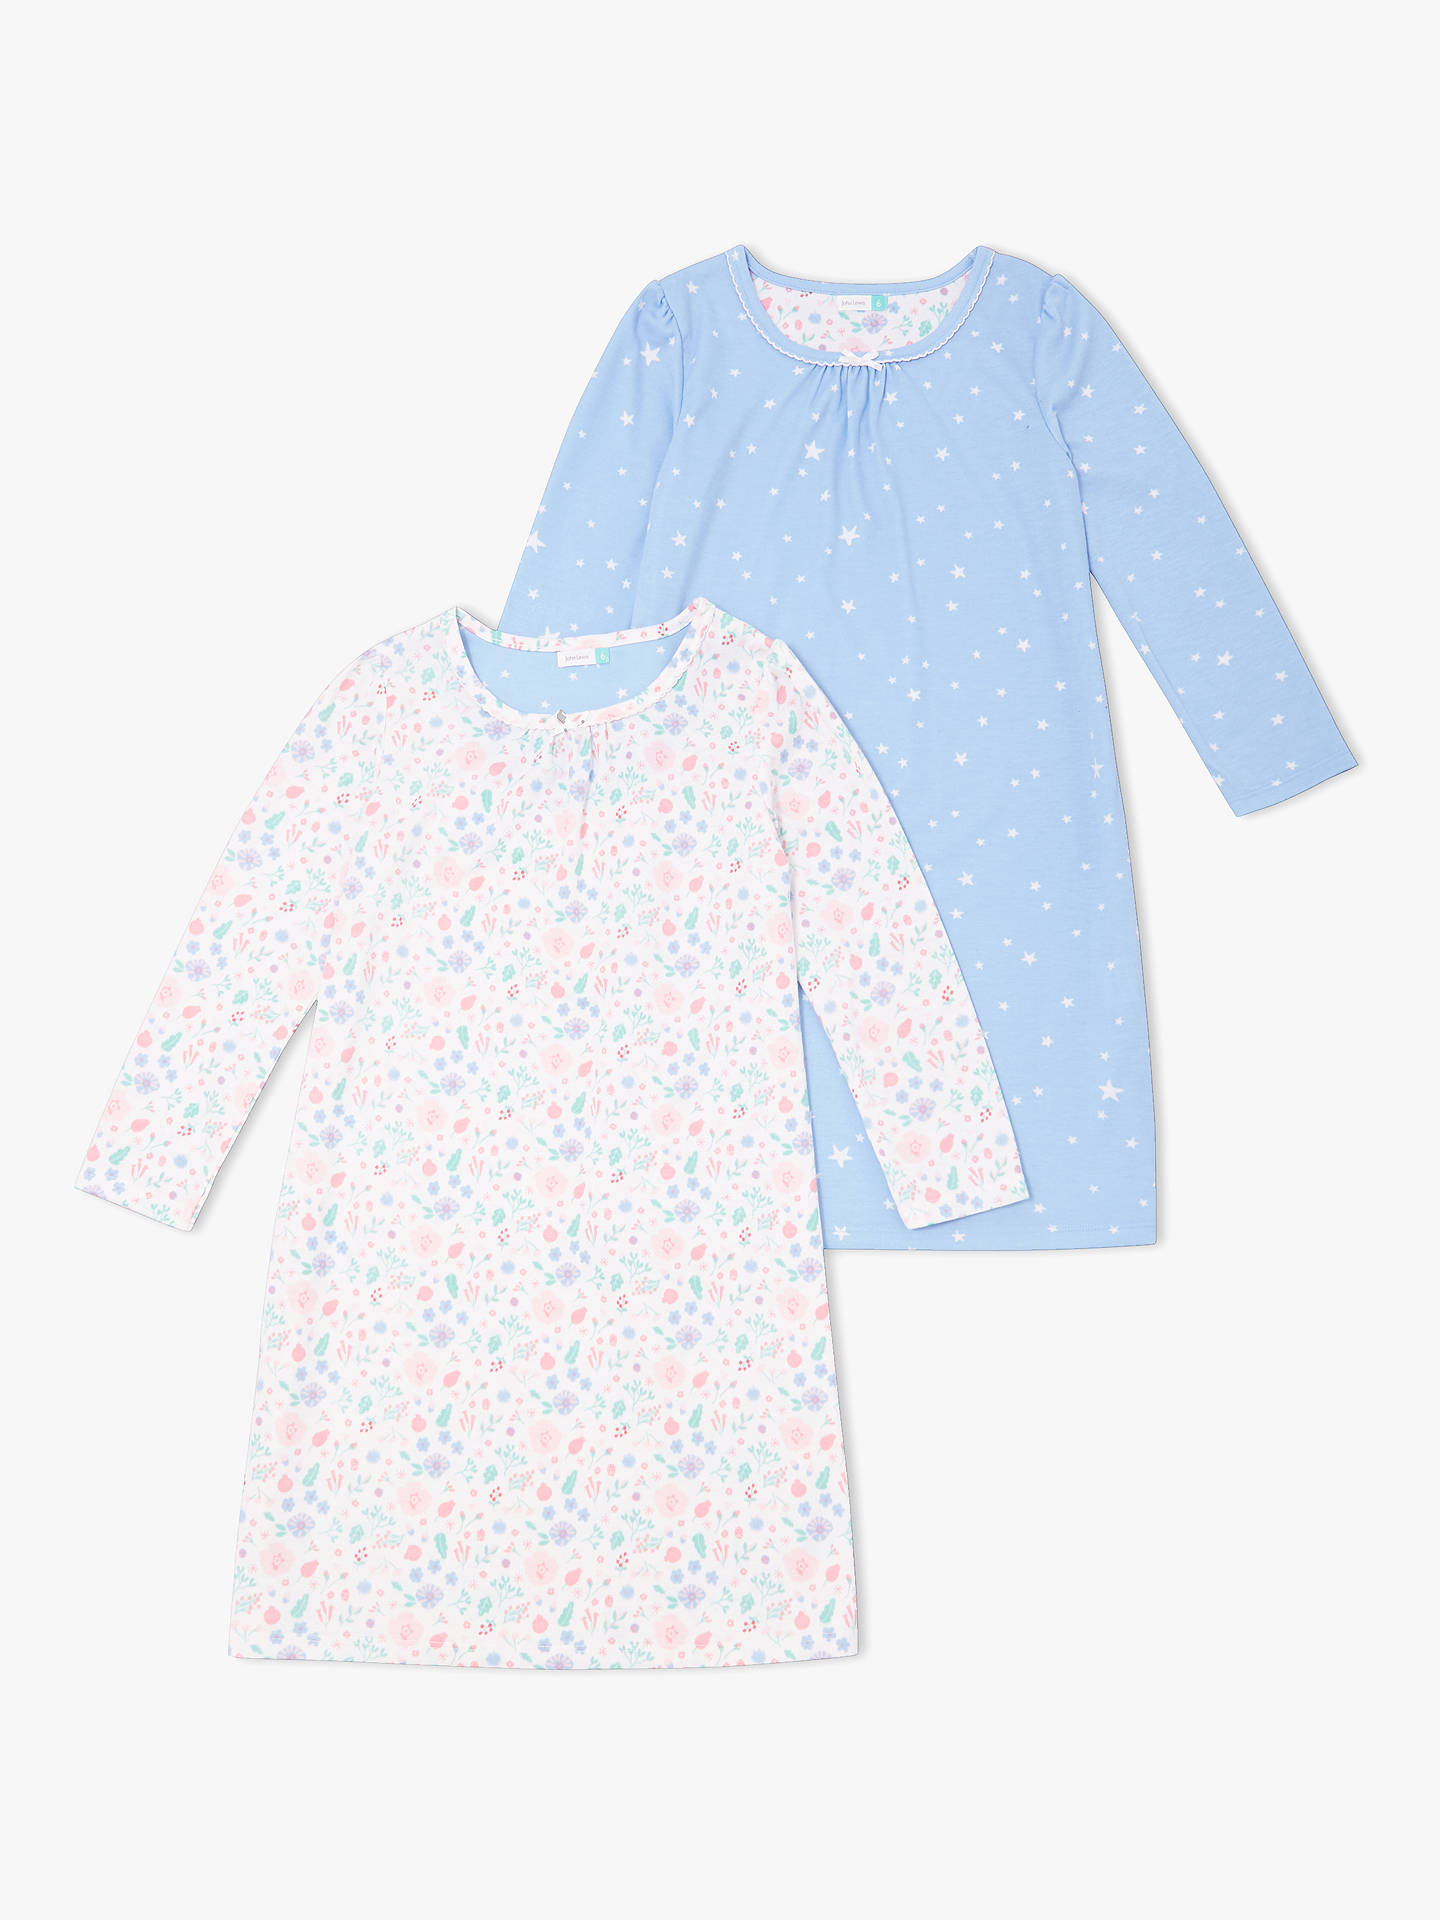 cc263df4e Buy John Lewis   Partners Girls  Folky Floral Night Dress